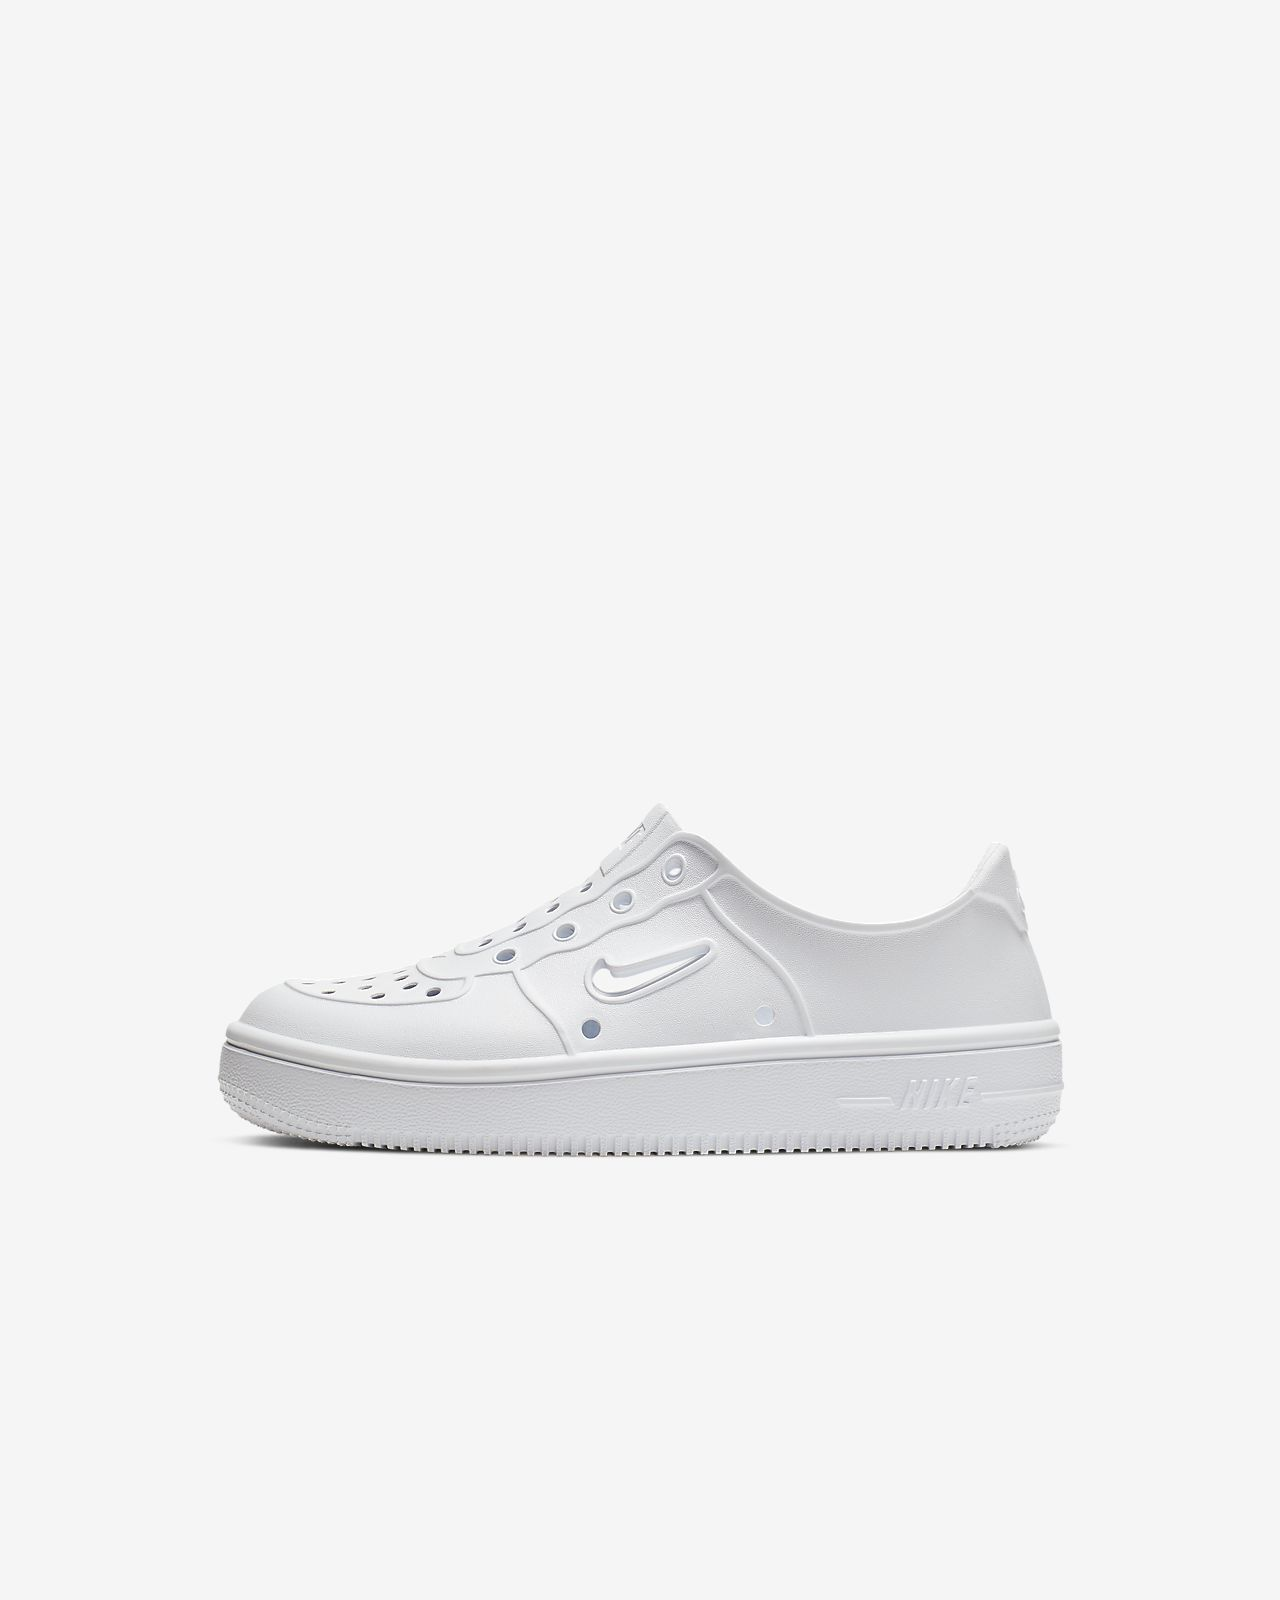 Nike Foam Force 1 sko til små barn